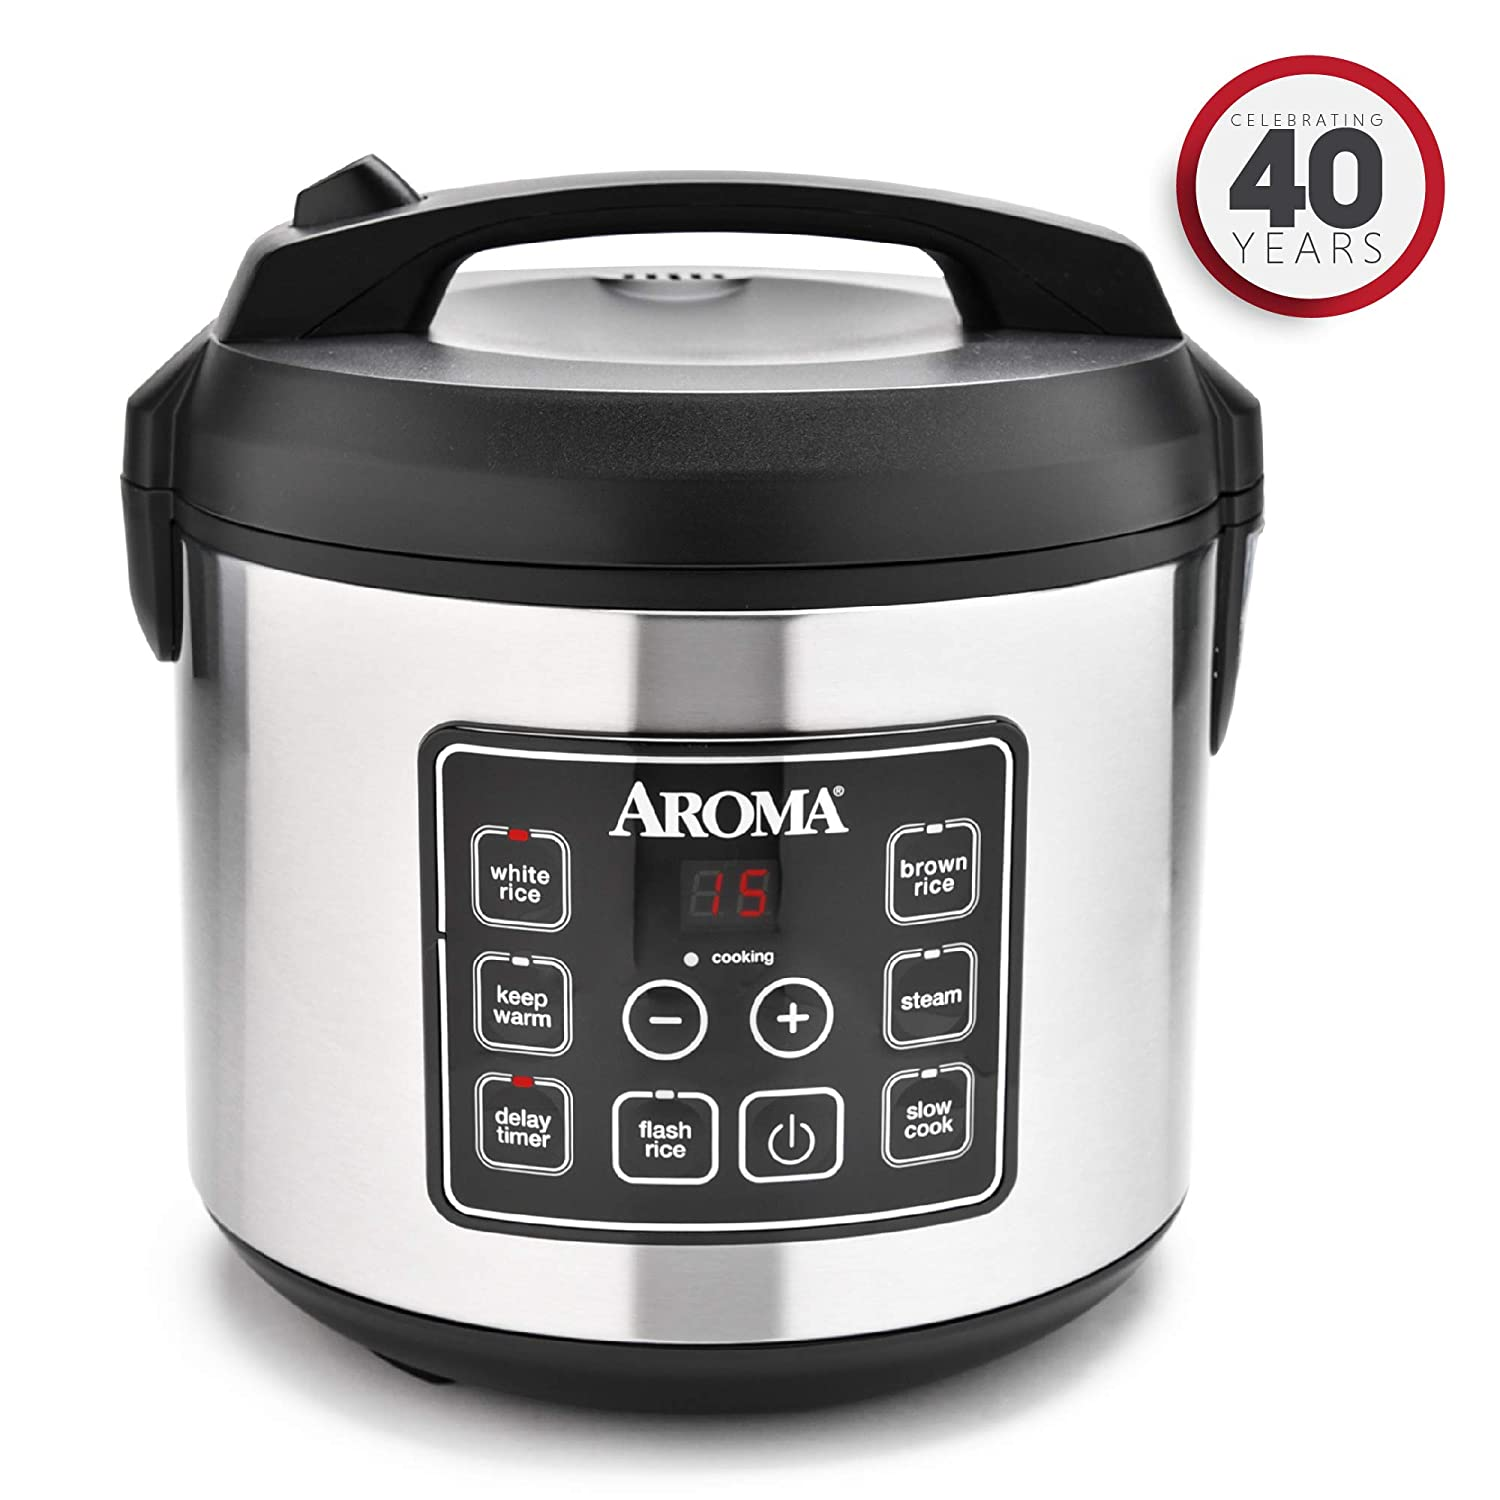 Aroma ARC-150SB 20-Cup, Cooked Digital Rice Cooker and Food Steamer, Black/Silver Aroma Housewares